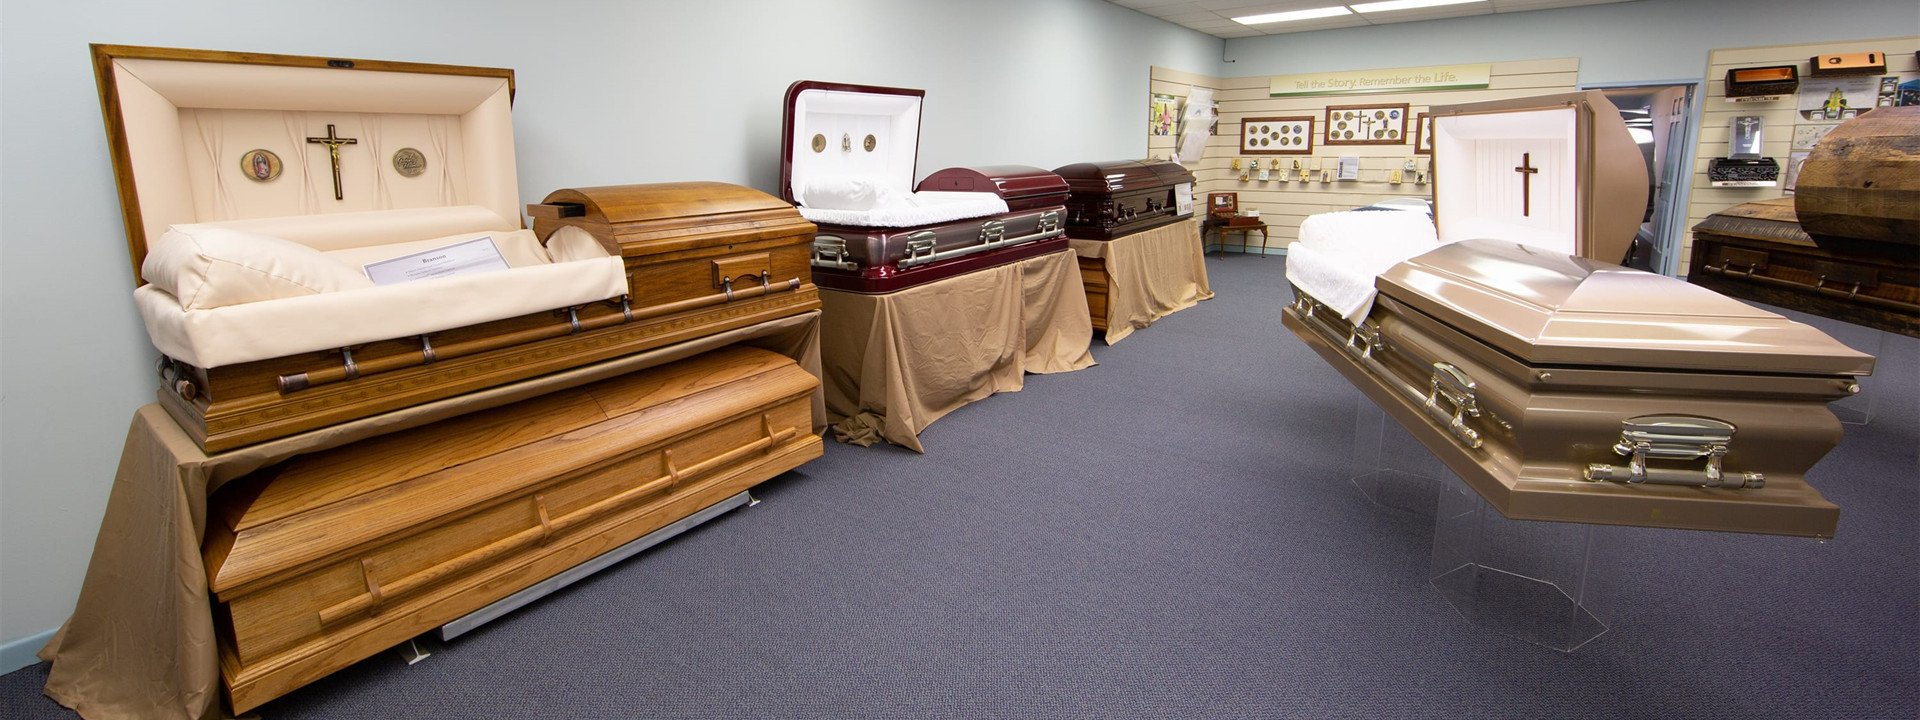 Resources | Kreidler Funeral Home, Inc.